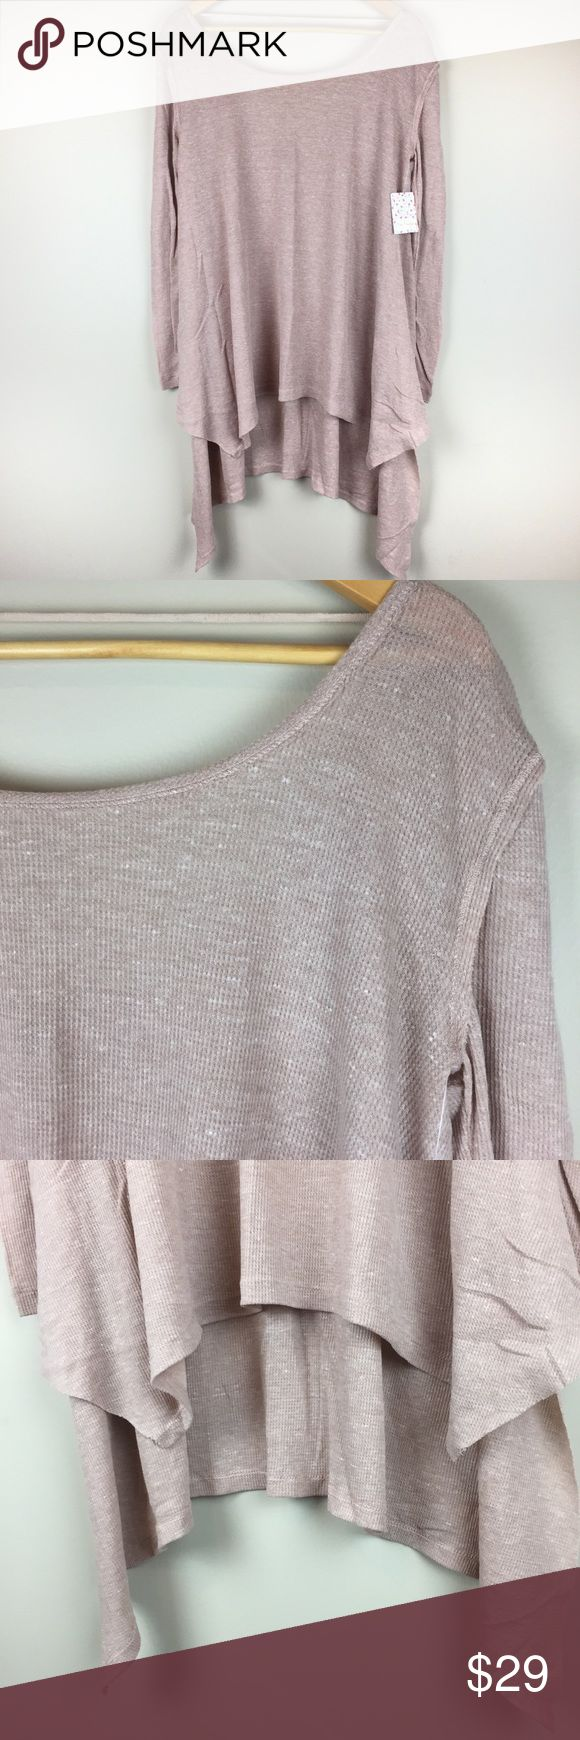 """Free People Shirt Incredible Tee Thermal Free People Women's Shirt Size Small Incredible Tee Lightweight Thermal NWT $78  Brand new Free People """"We The Free"""" Incredible Tee in the color latte (brownish beige). Women's size small, however, this is a very relaxed/oversized fit—please see measurements! Distressed lightweight knit with scoop neck in front and back and high-low hem. Smoke-free home.  APPROXIMATE measurements: Armpit to armpit 21.5"""" Length (shortest) 27.5"""" Length (longest) 35""""…"""